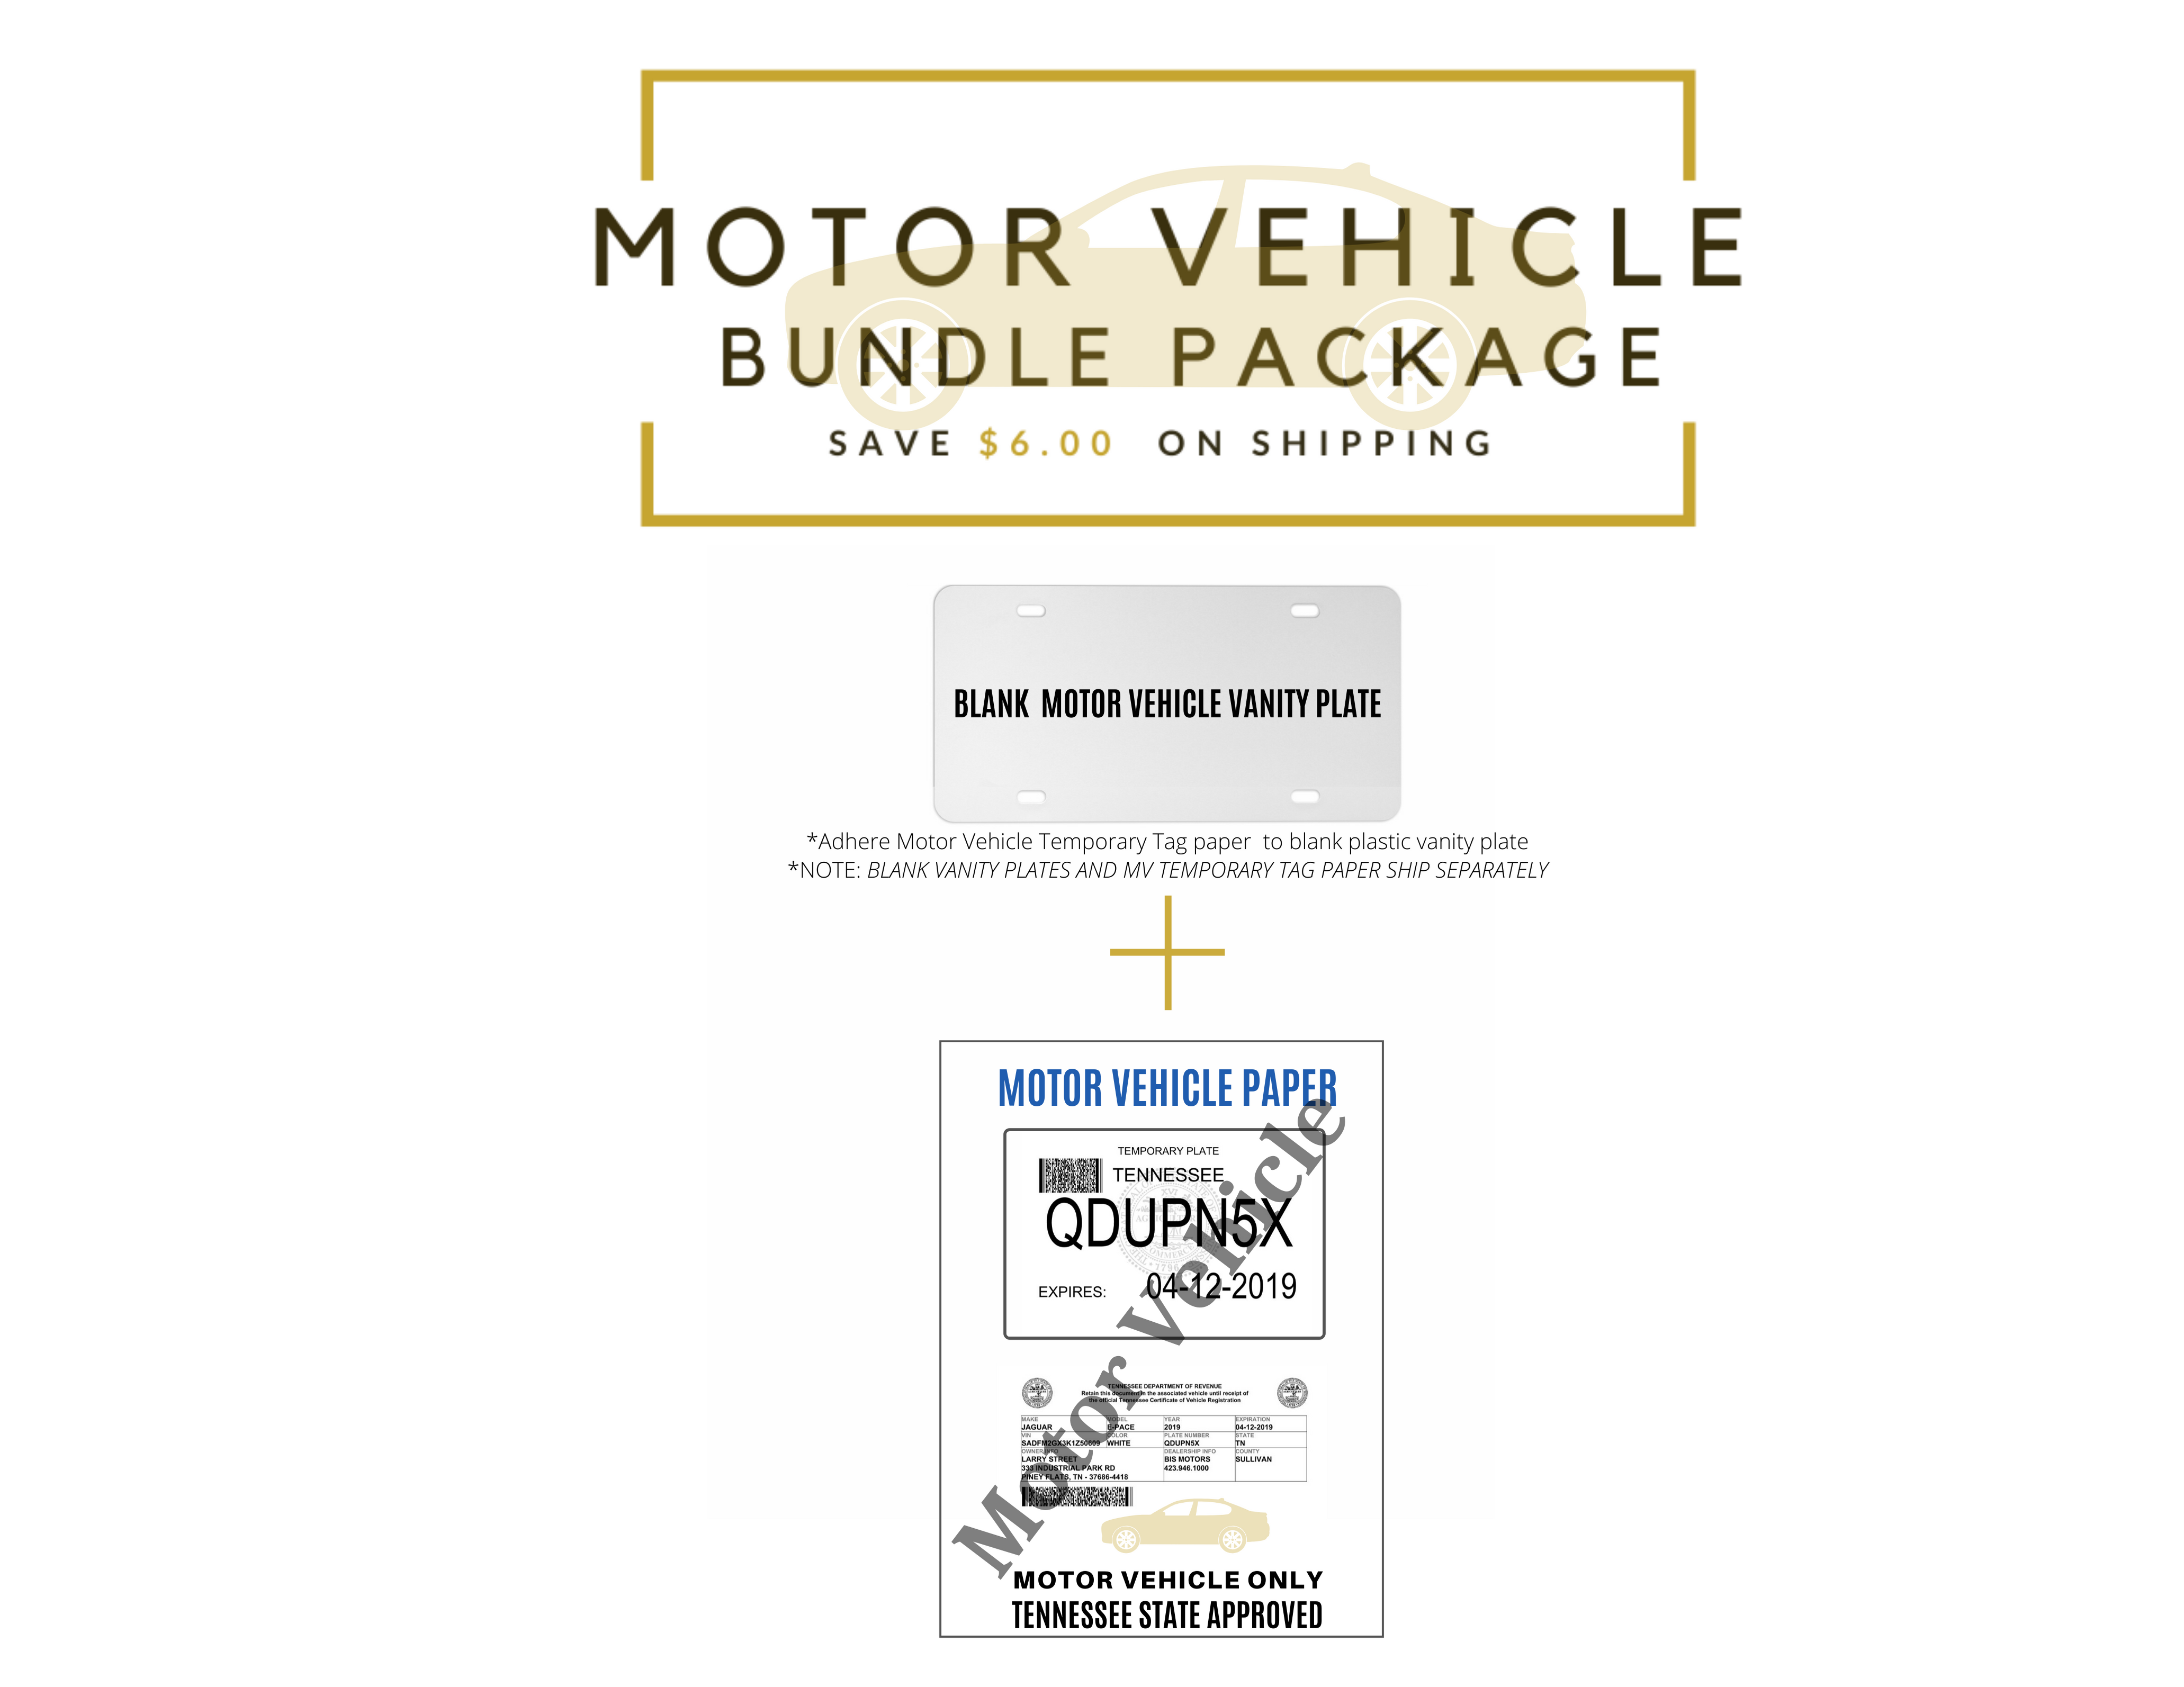 EZ Tag Motor Vehicle Paper (100 pack) and Vanity Plates (100 pack) - Save $6.00 on Shipping with Bundling<br>